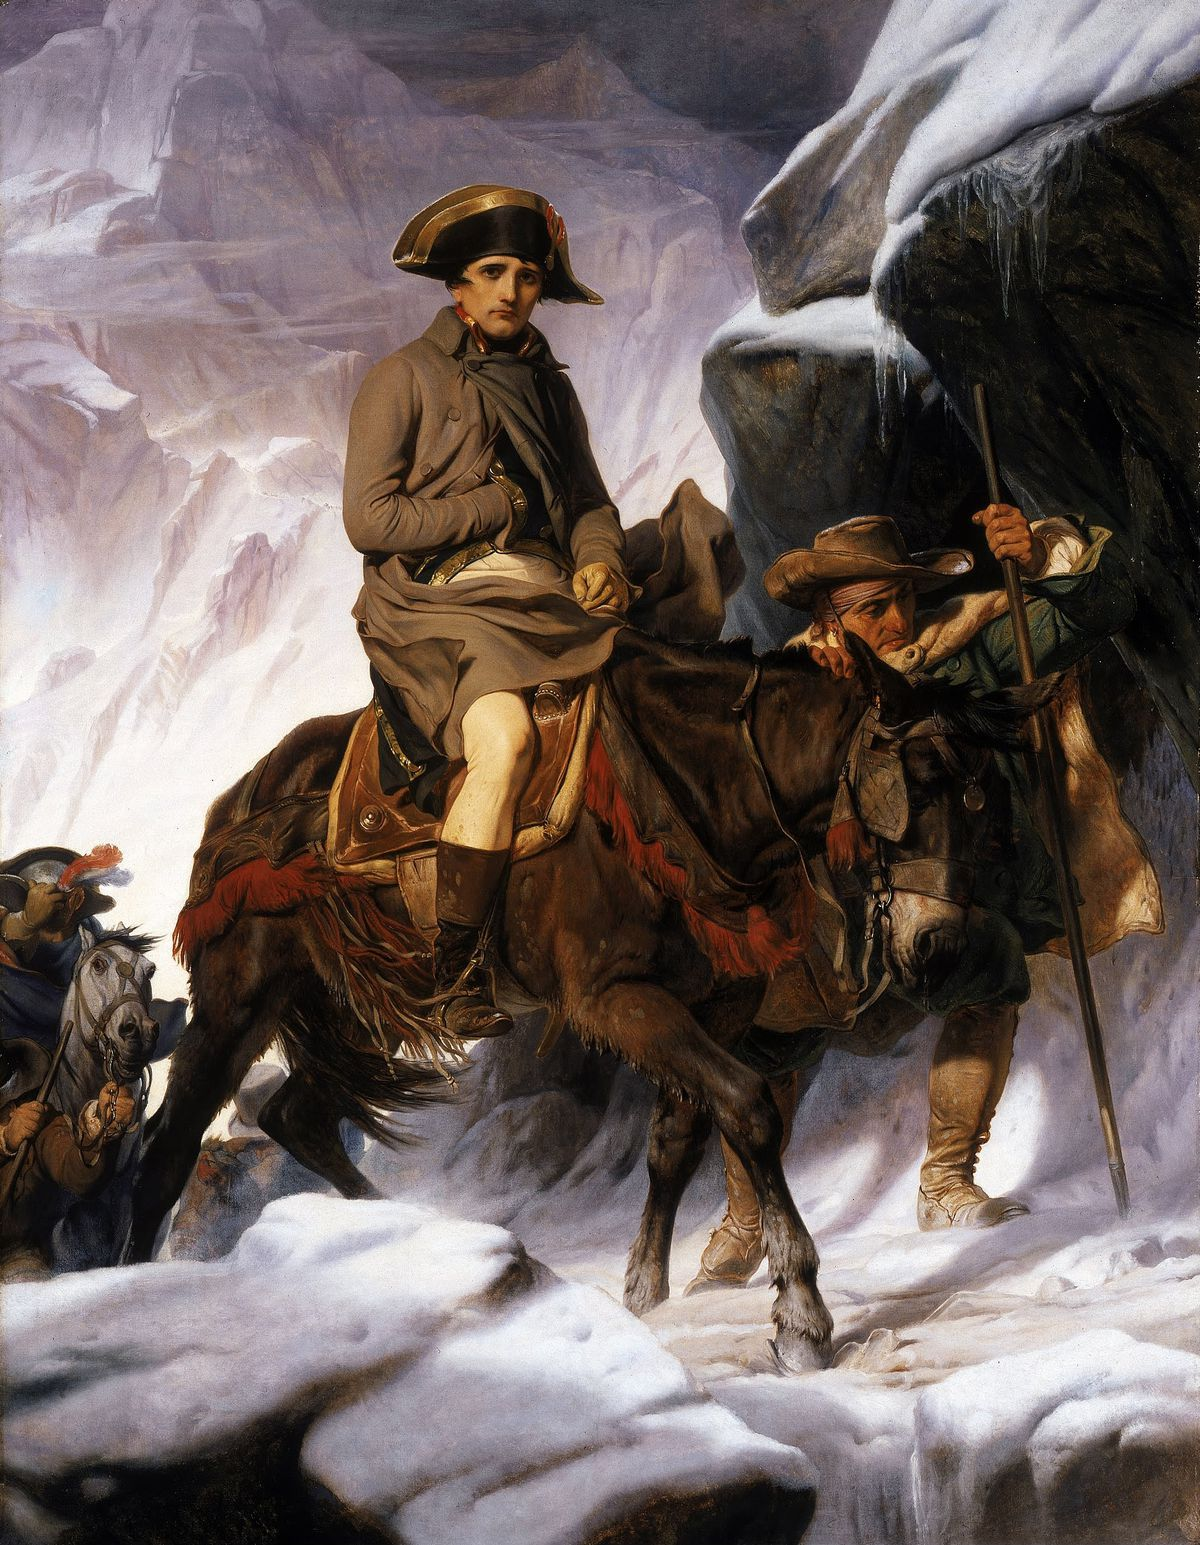 Napoleon crossing on a mule.